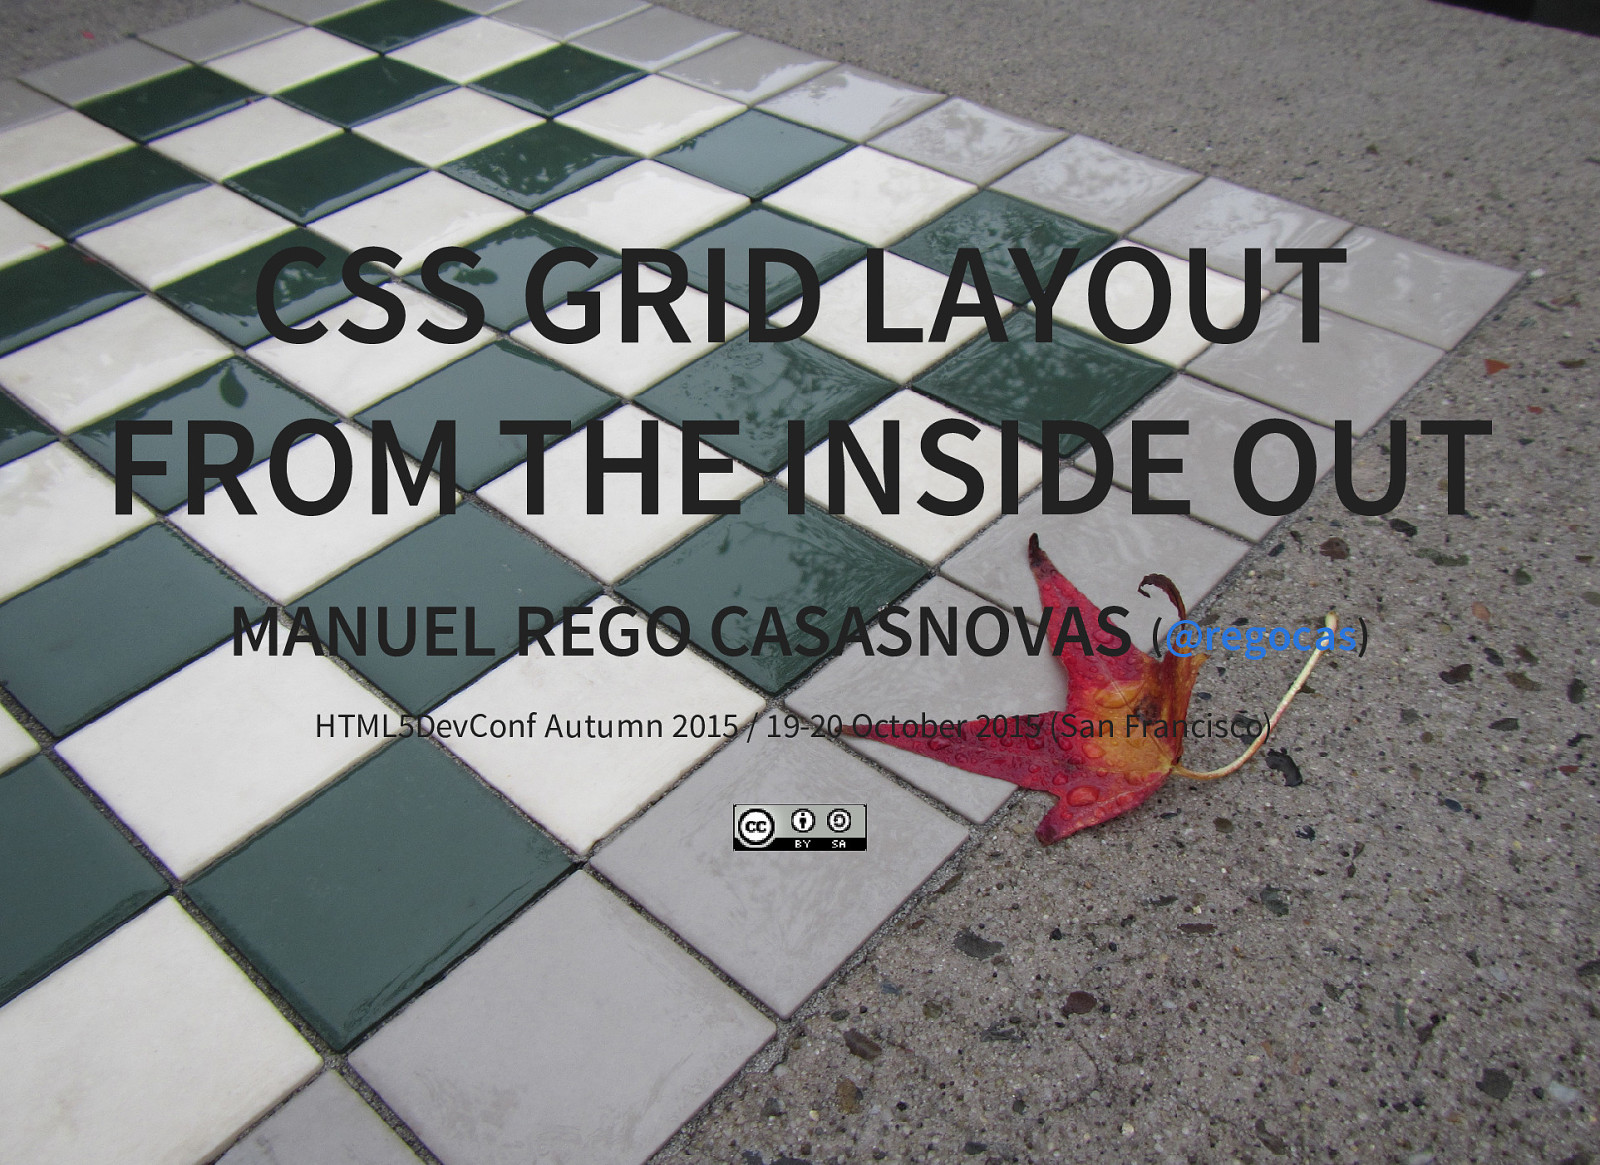 CSS Grid Layout from the inside out